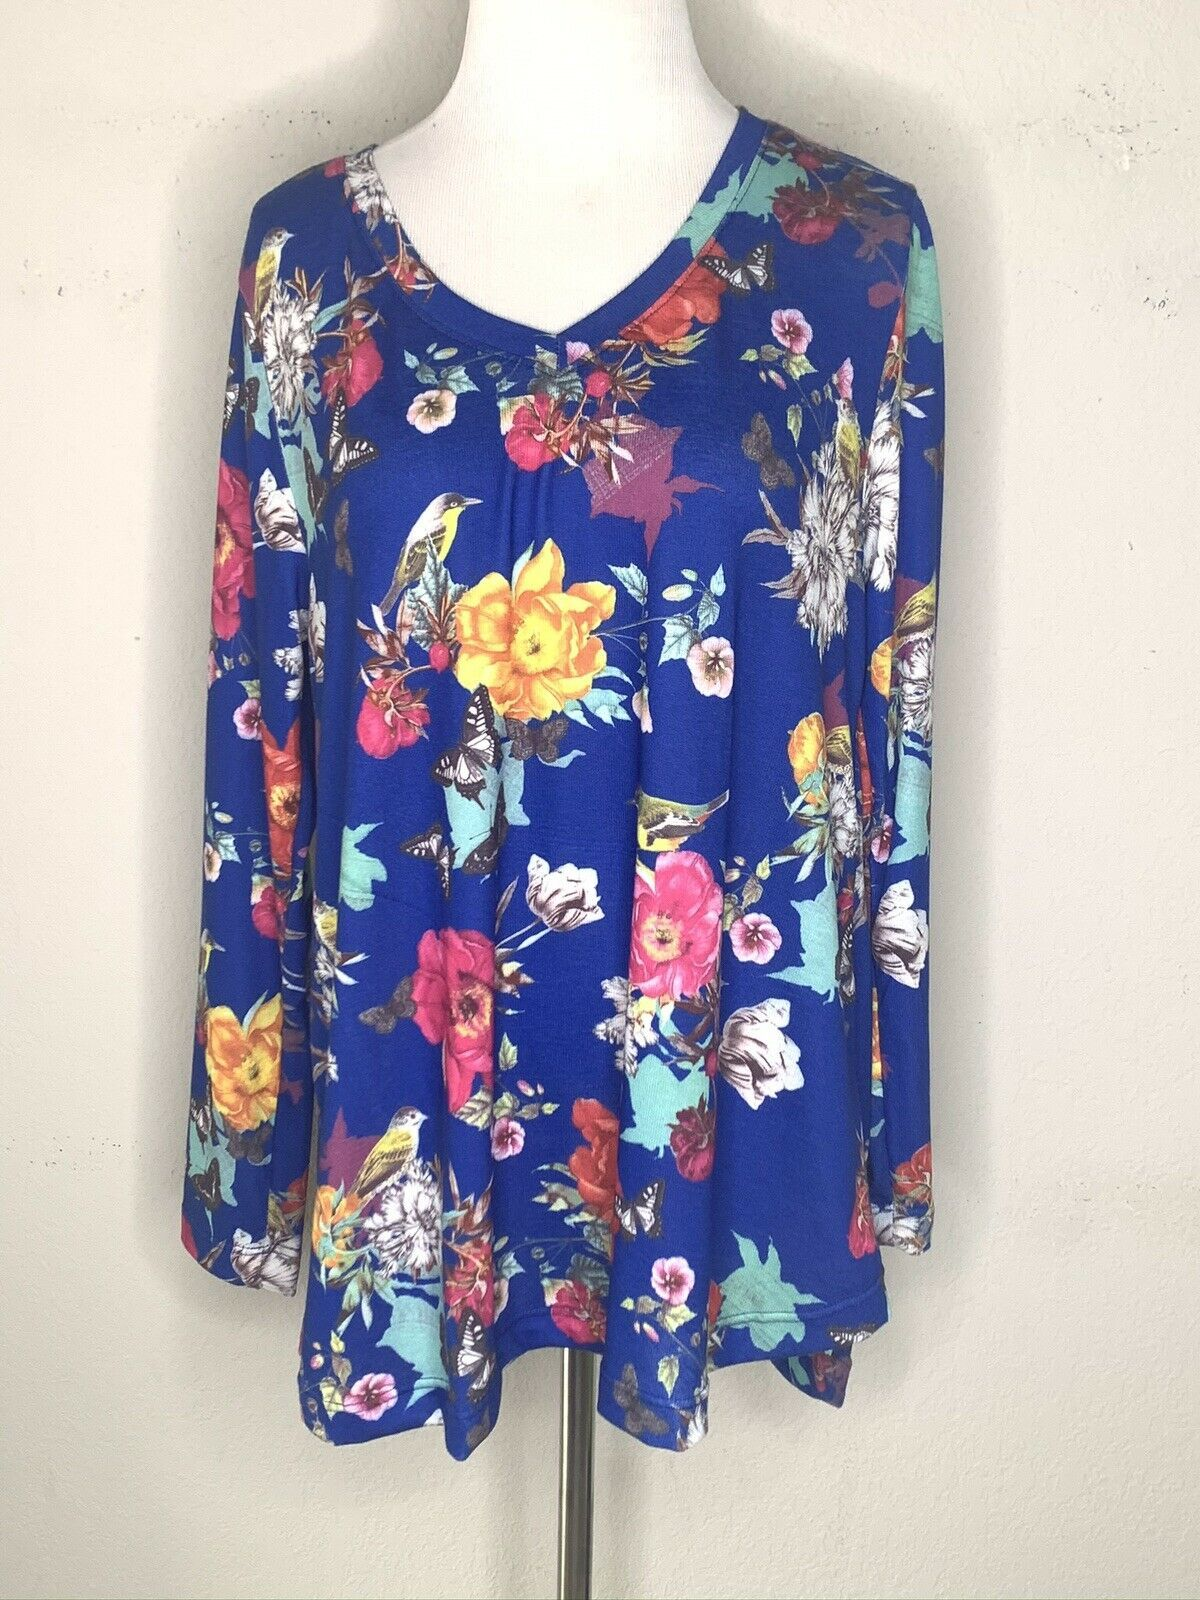 Primary image for Soft Surroundings Womens Floral Shirt Tunic Top Blue V-Neck Long Sleeve Sz PL